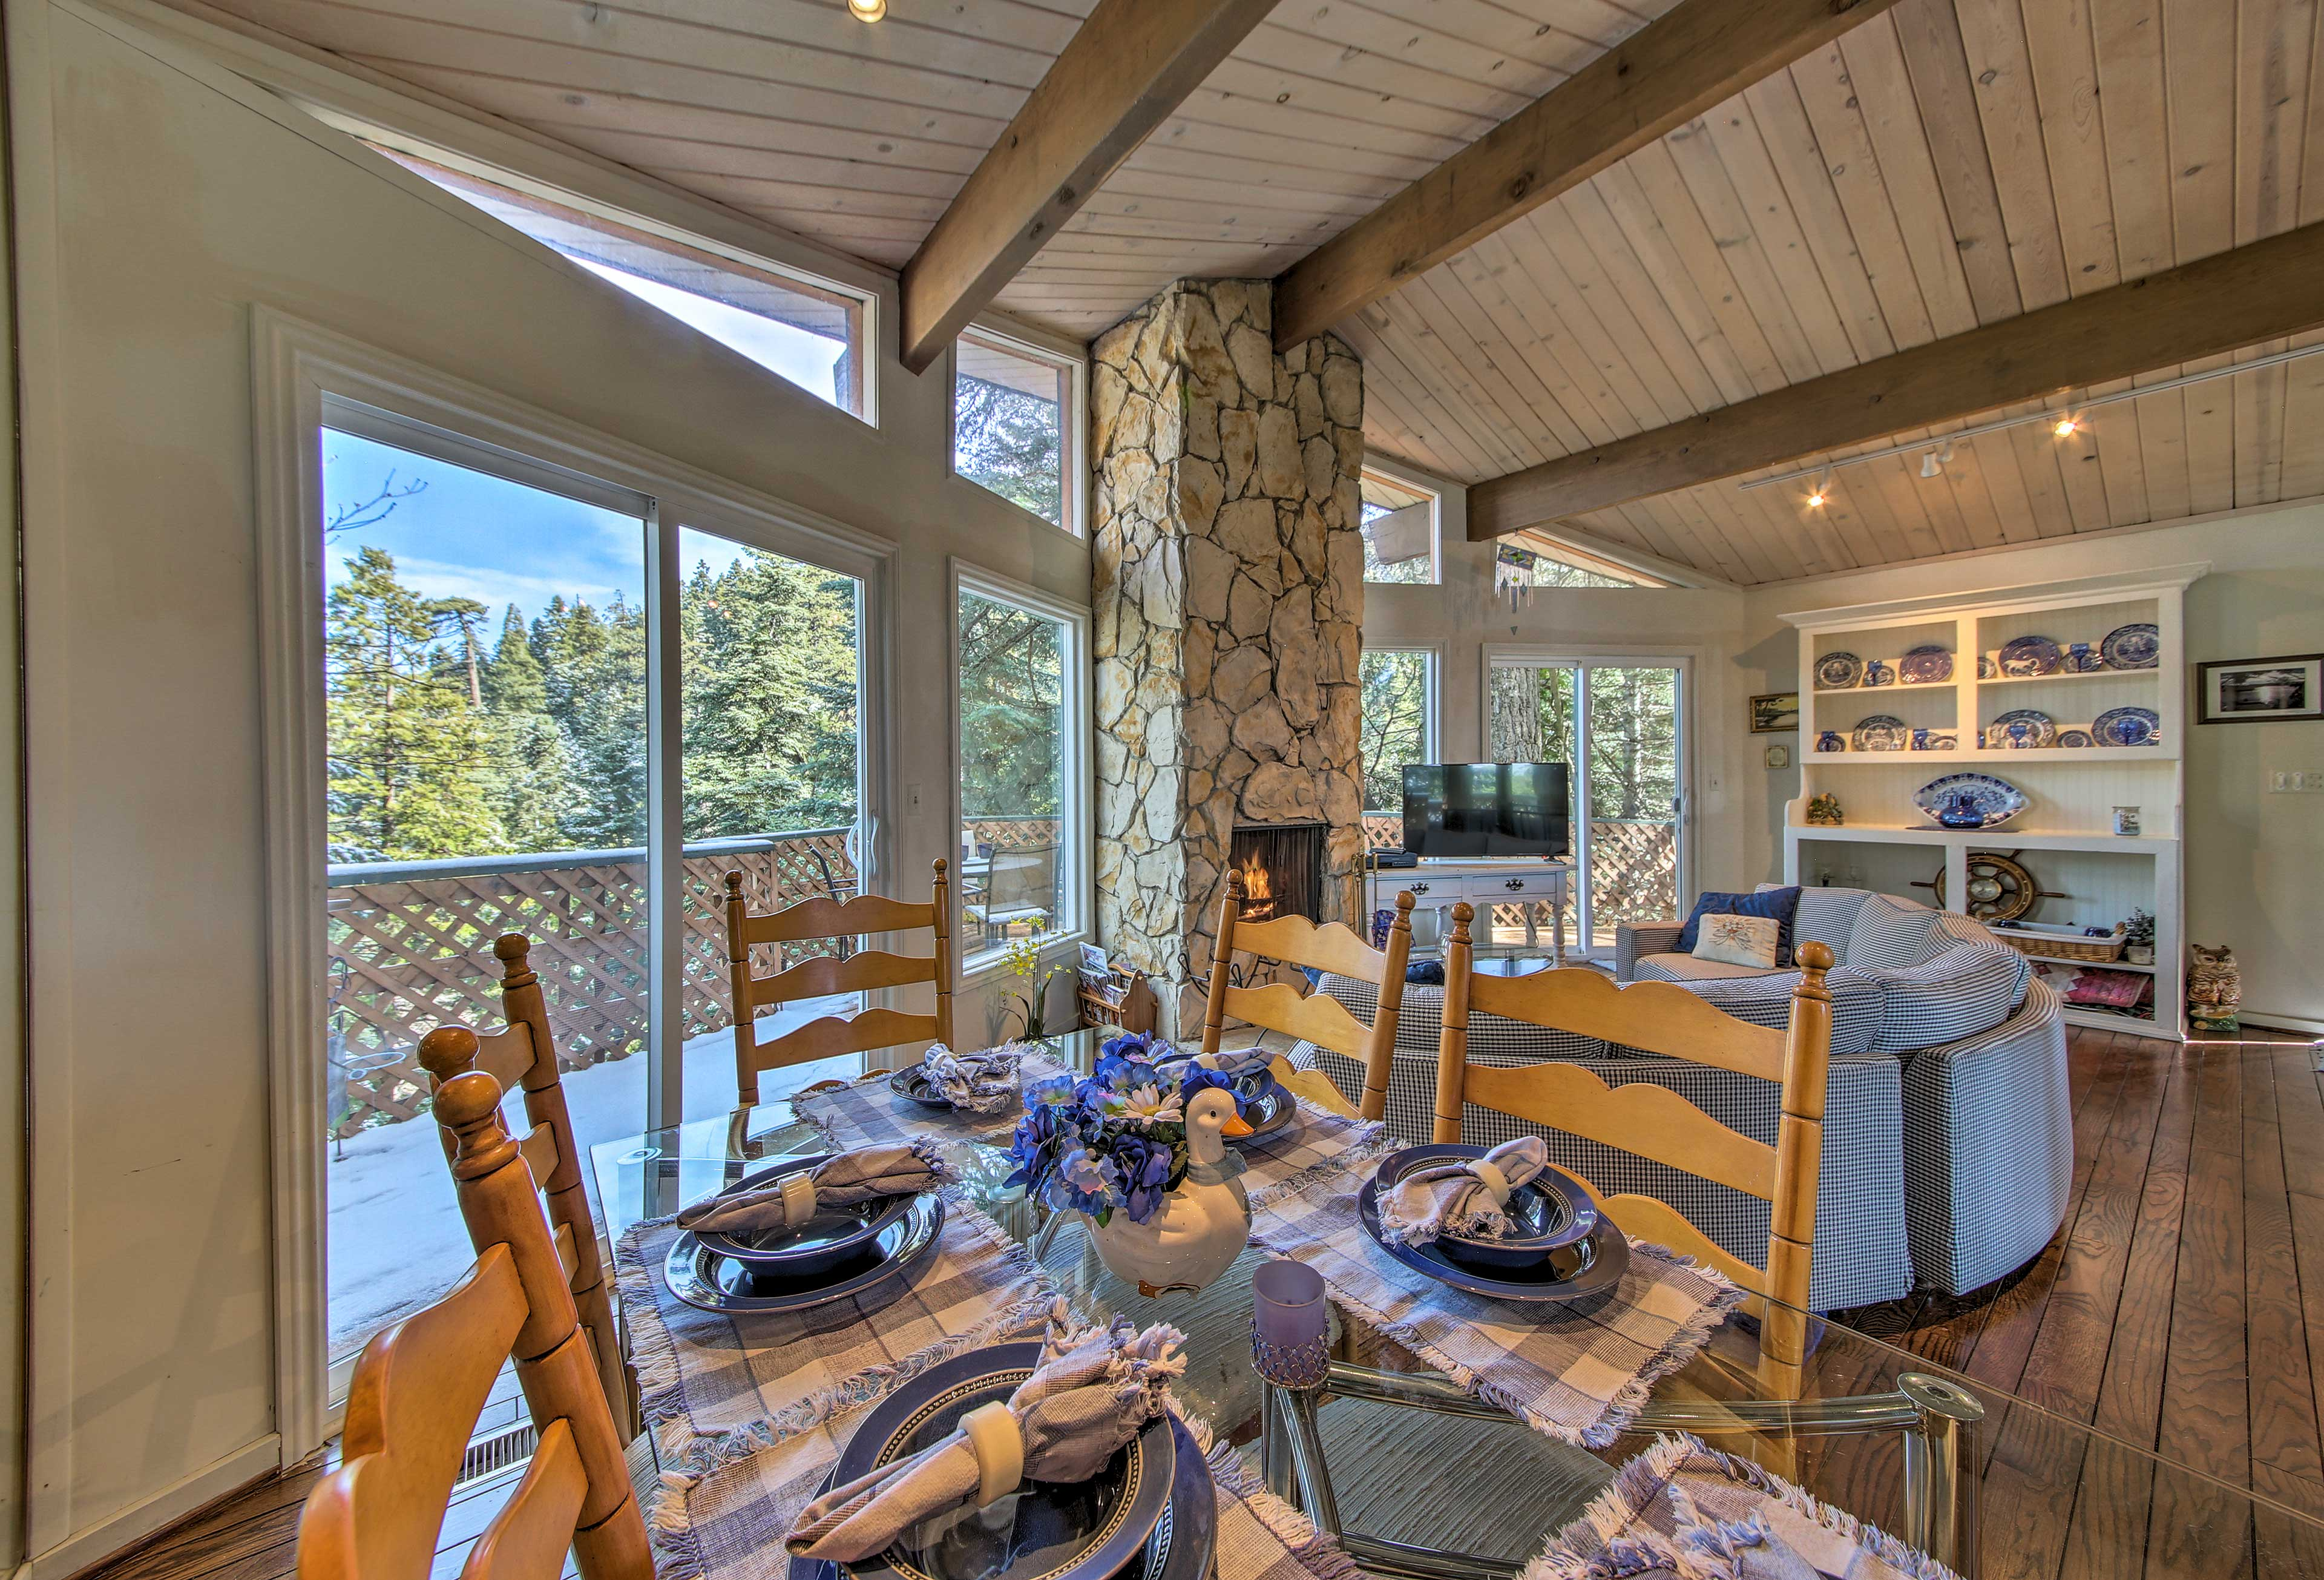 Share home-cooked meals at this beautiful dining table facing the forest views.